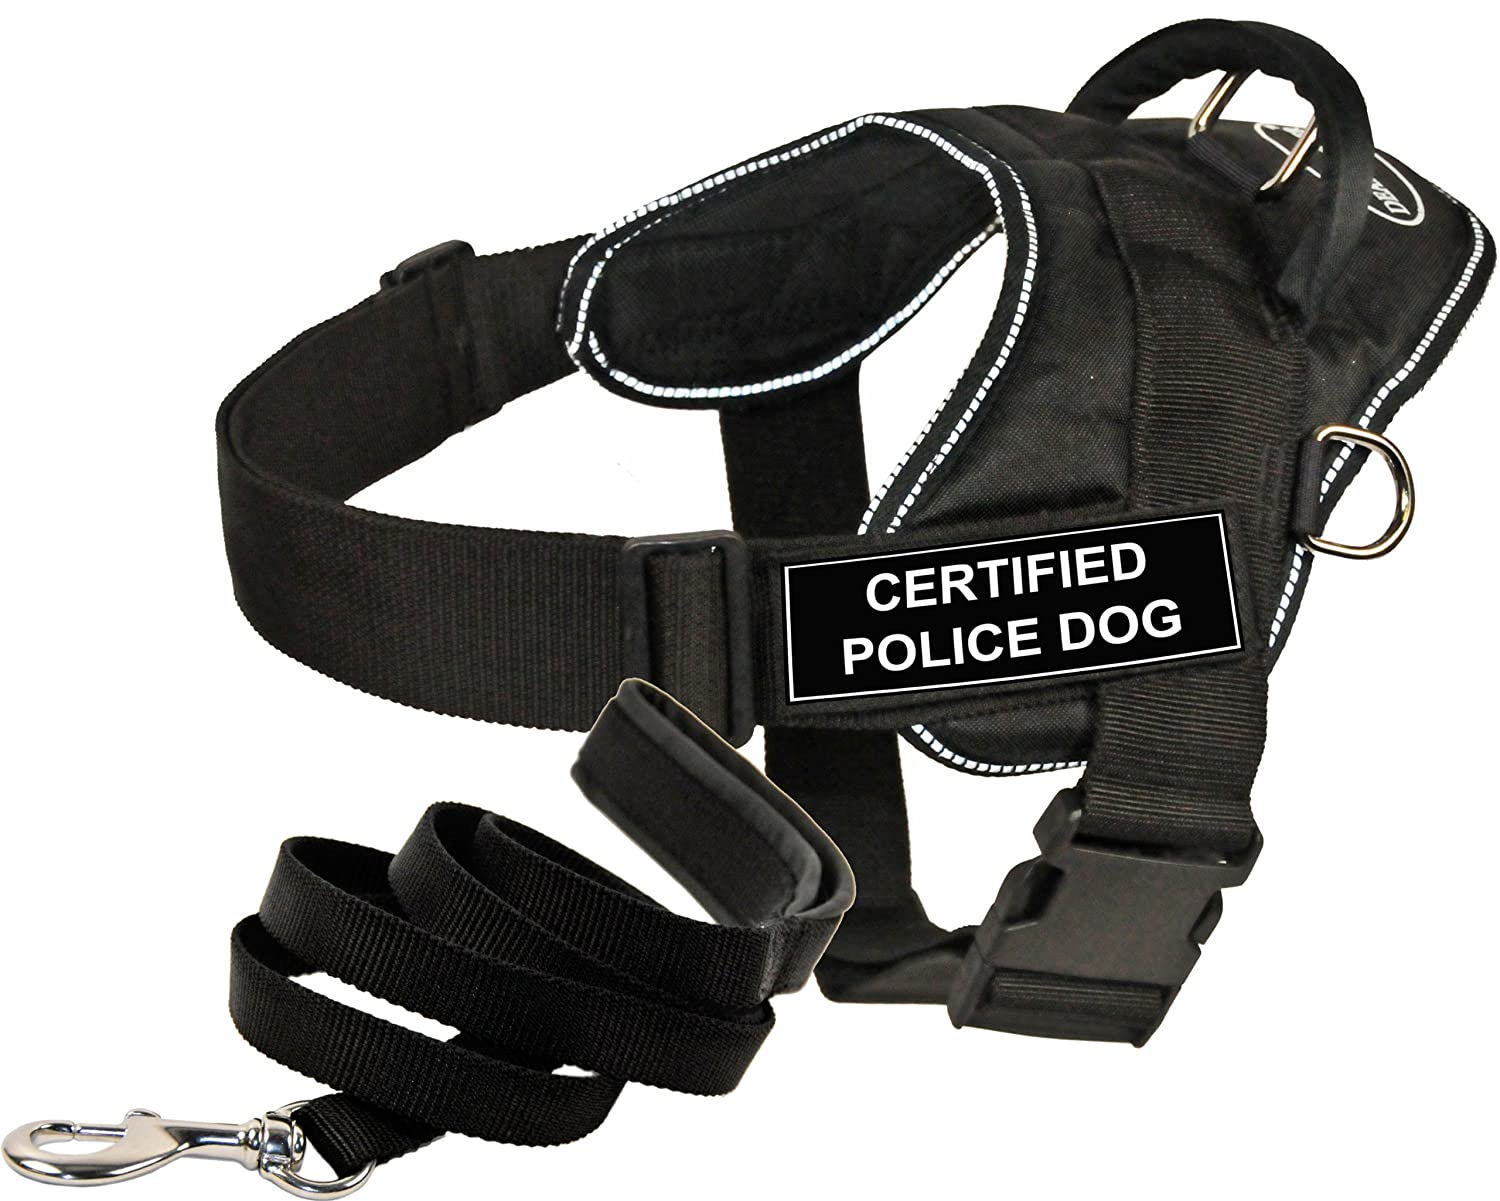 Dean and Tyler Bundle One DT Fun Works  Harness, Certified Police Dog, Reflective, XSmall + One Padded Puppy  Leash, 6 FT Stainless Snap Black